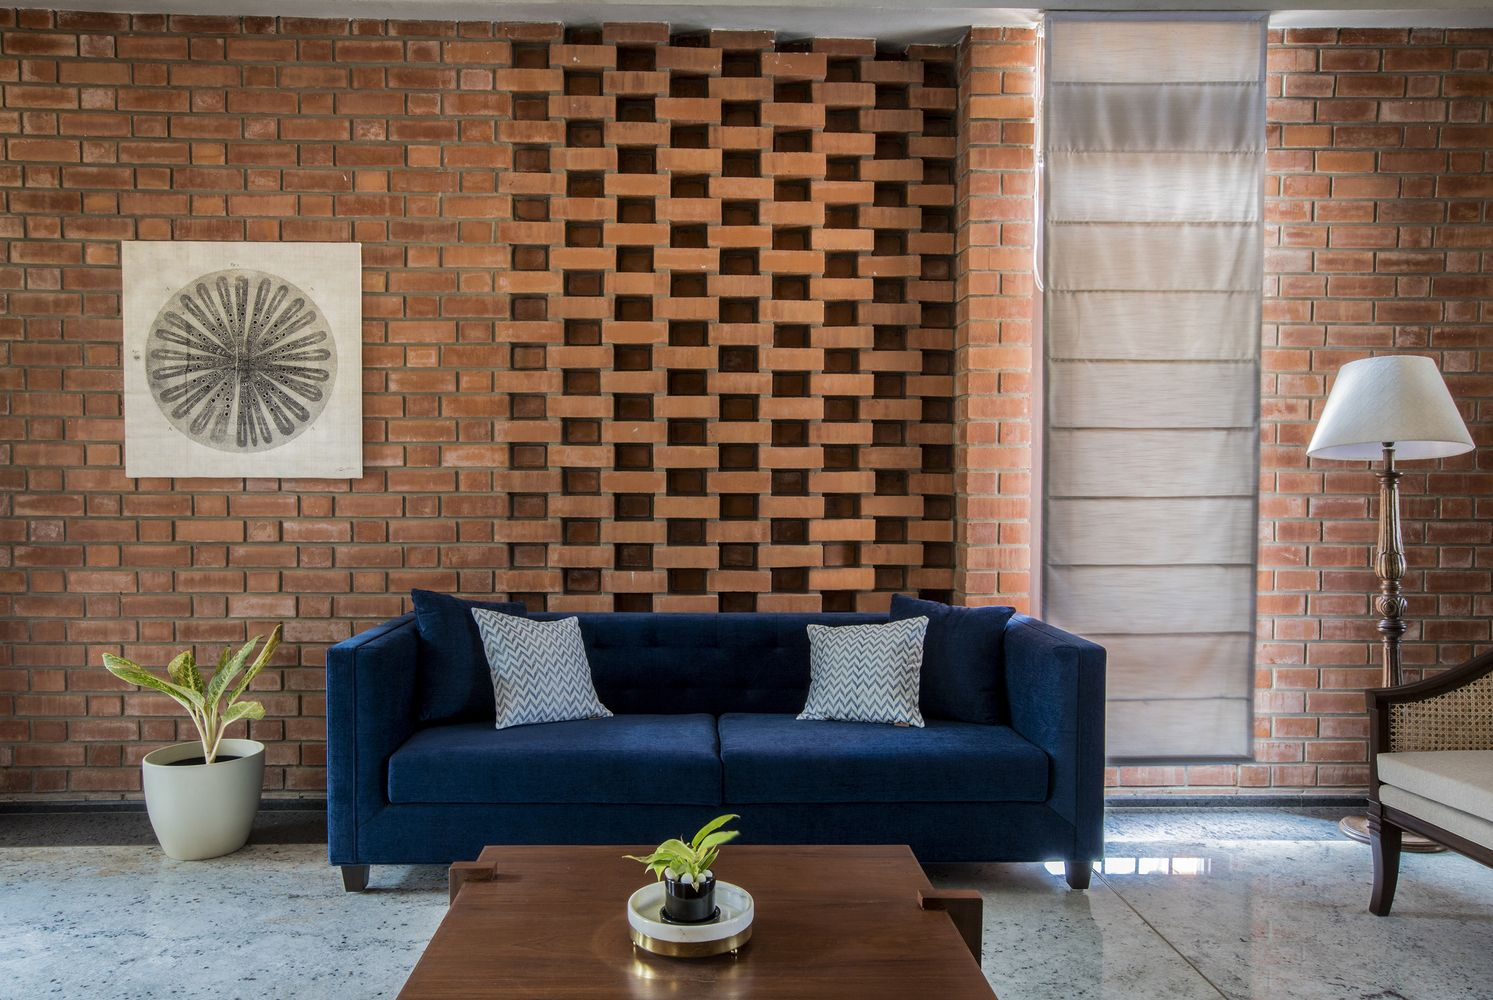 Gallery Of Corbel House Kamat Rozario Architecture 3 In 2020 Furniture Design Kerala Houses Interior